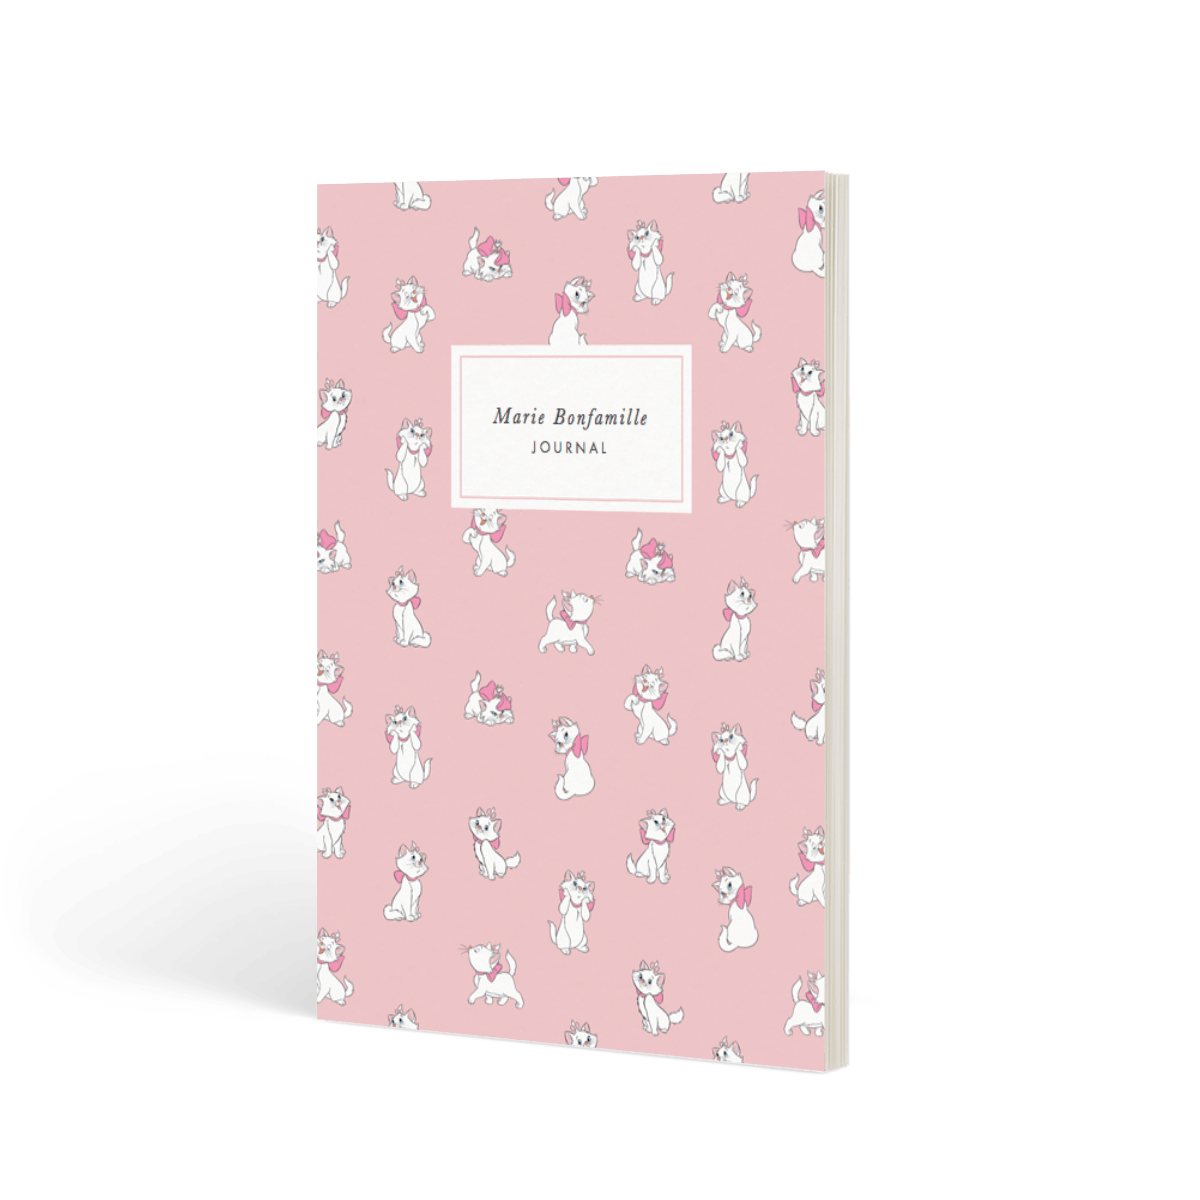 Https%3a%2f%2fwww.papier.com%2fproduct image%2f51318%2f6%2fmarie aristocats 12568 front 1540477321.png?ixlib=rb 1.1